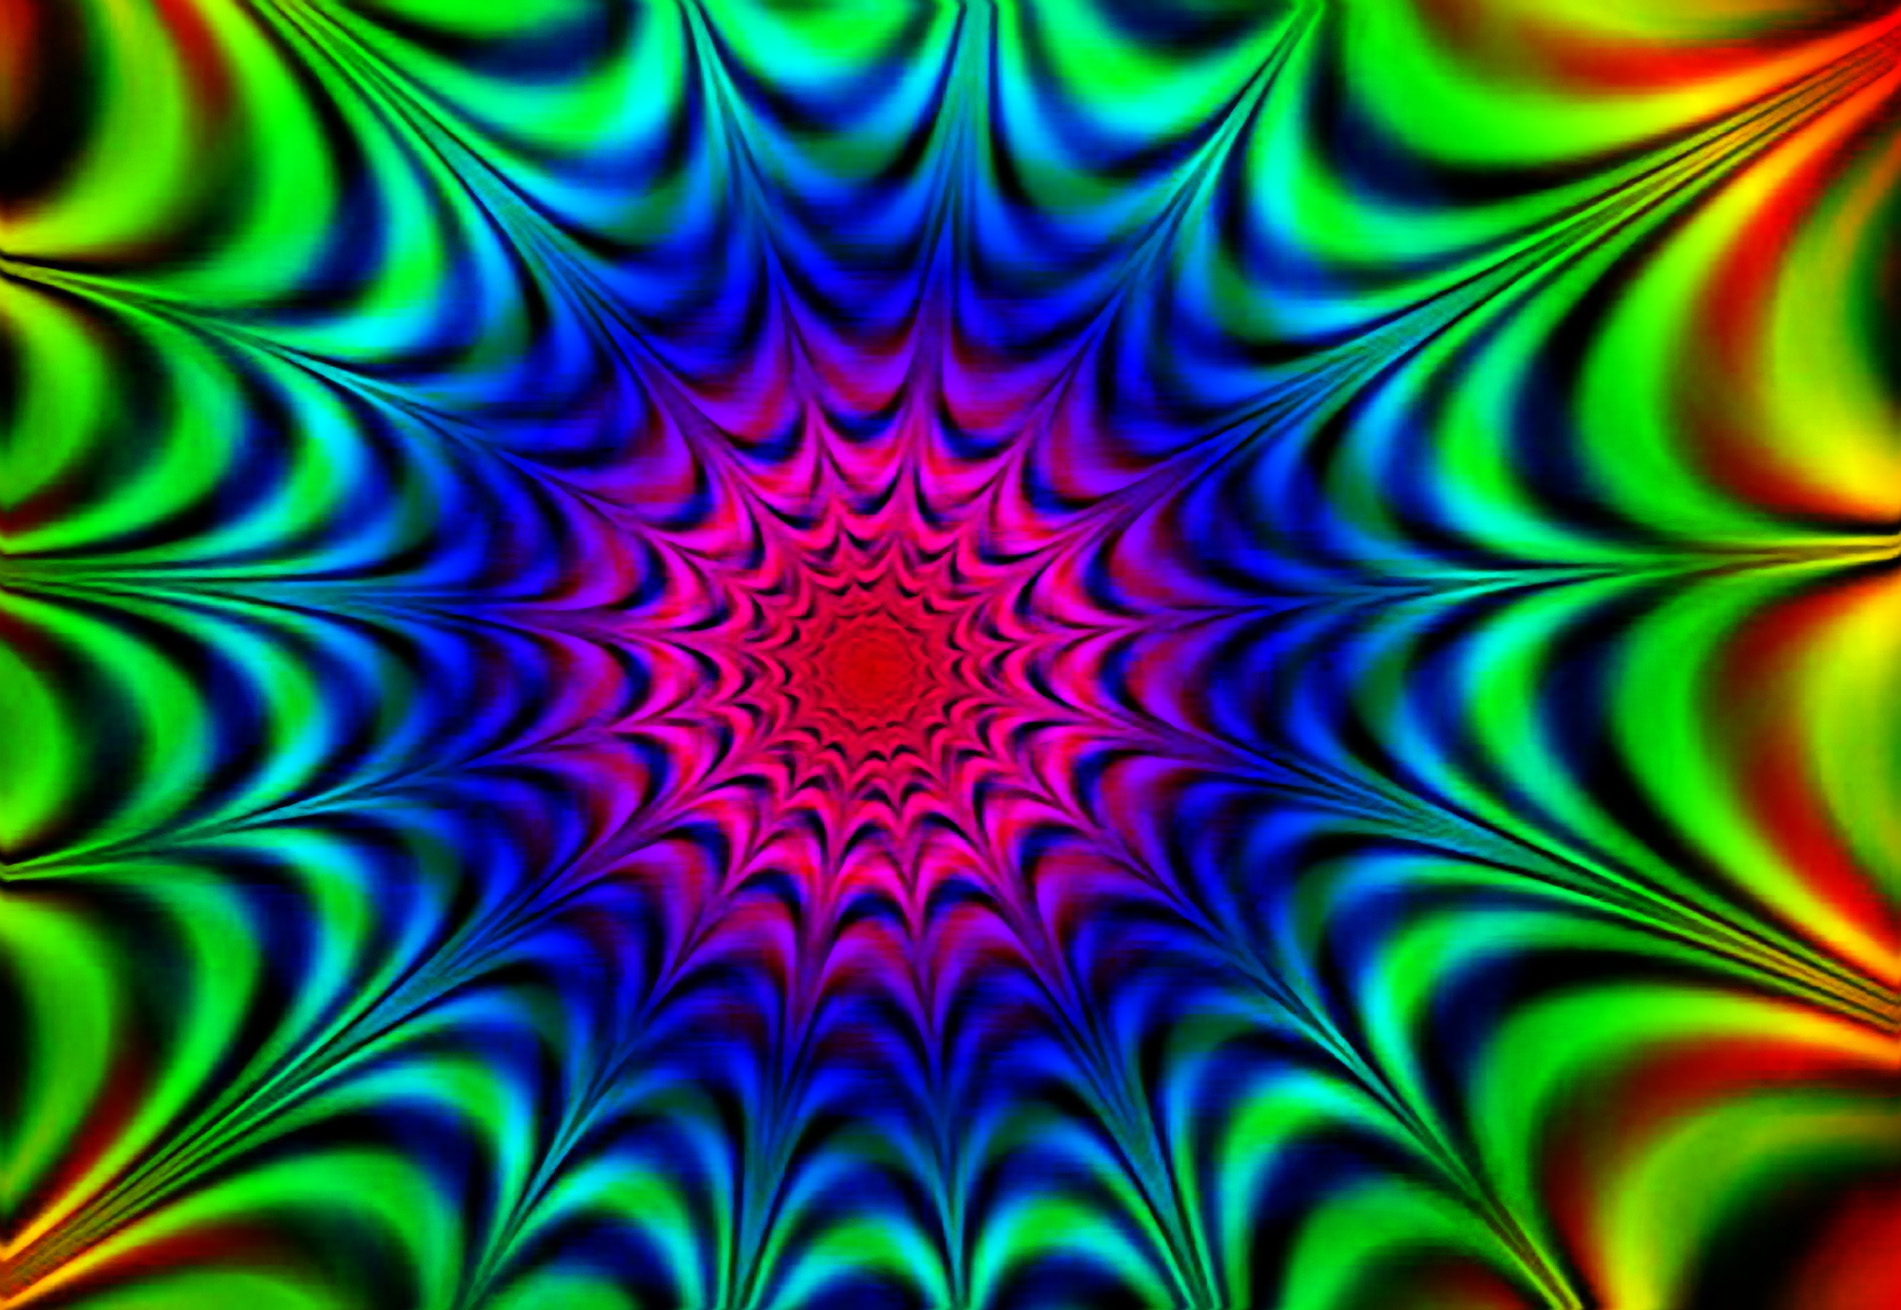 colorful illusion backgrounds awesome - photo #13